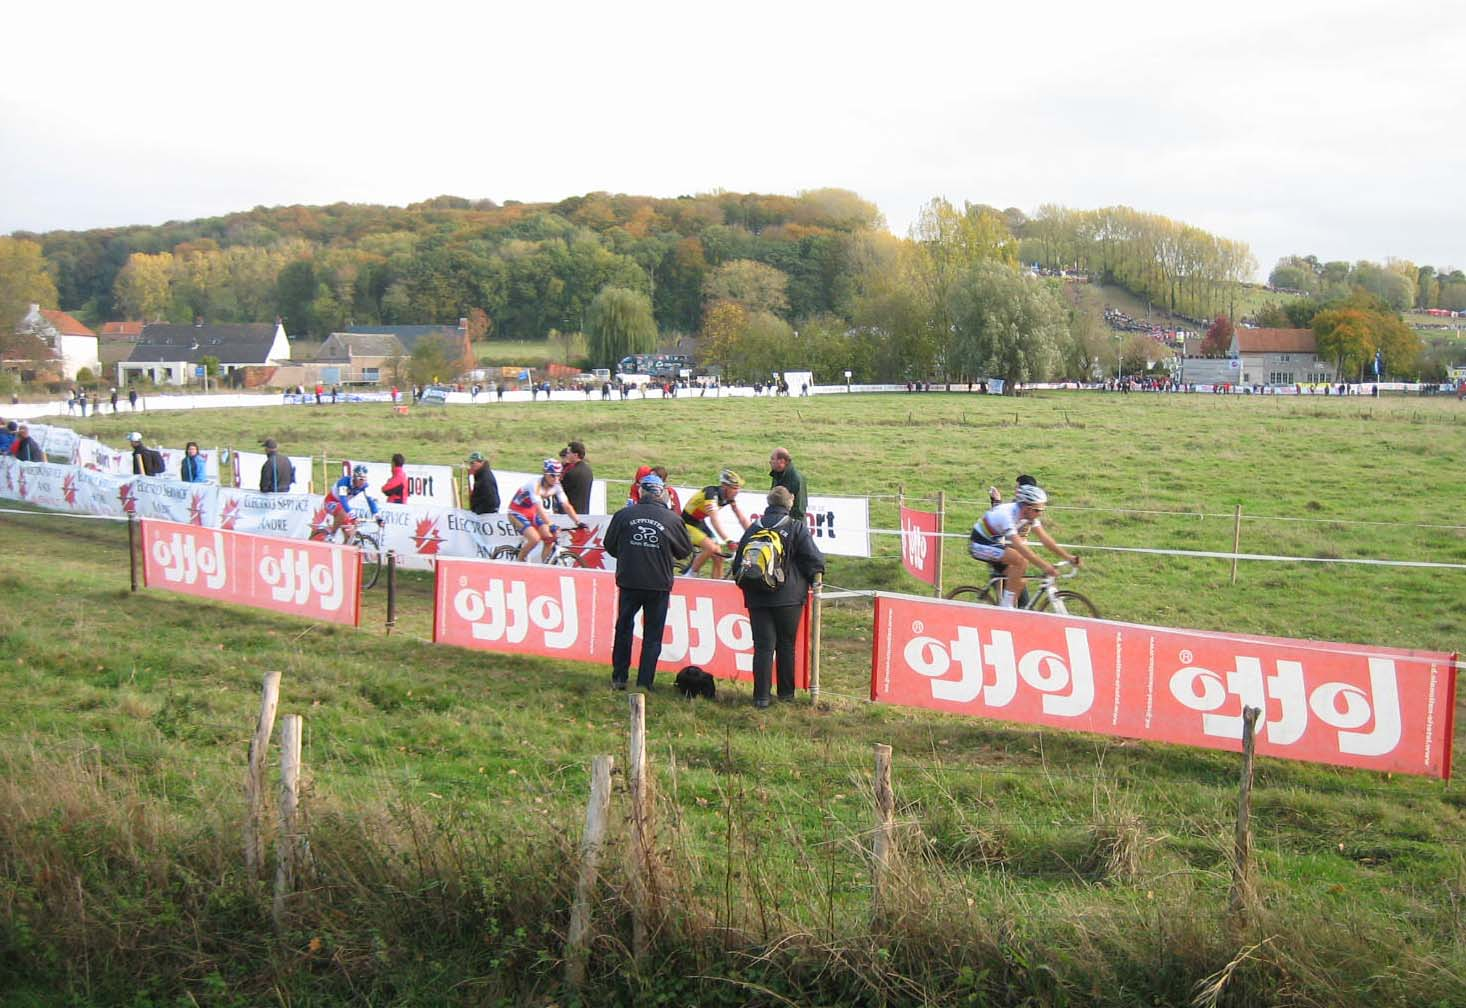 The leaders make their way through a flat field. by Christine Vardaros